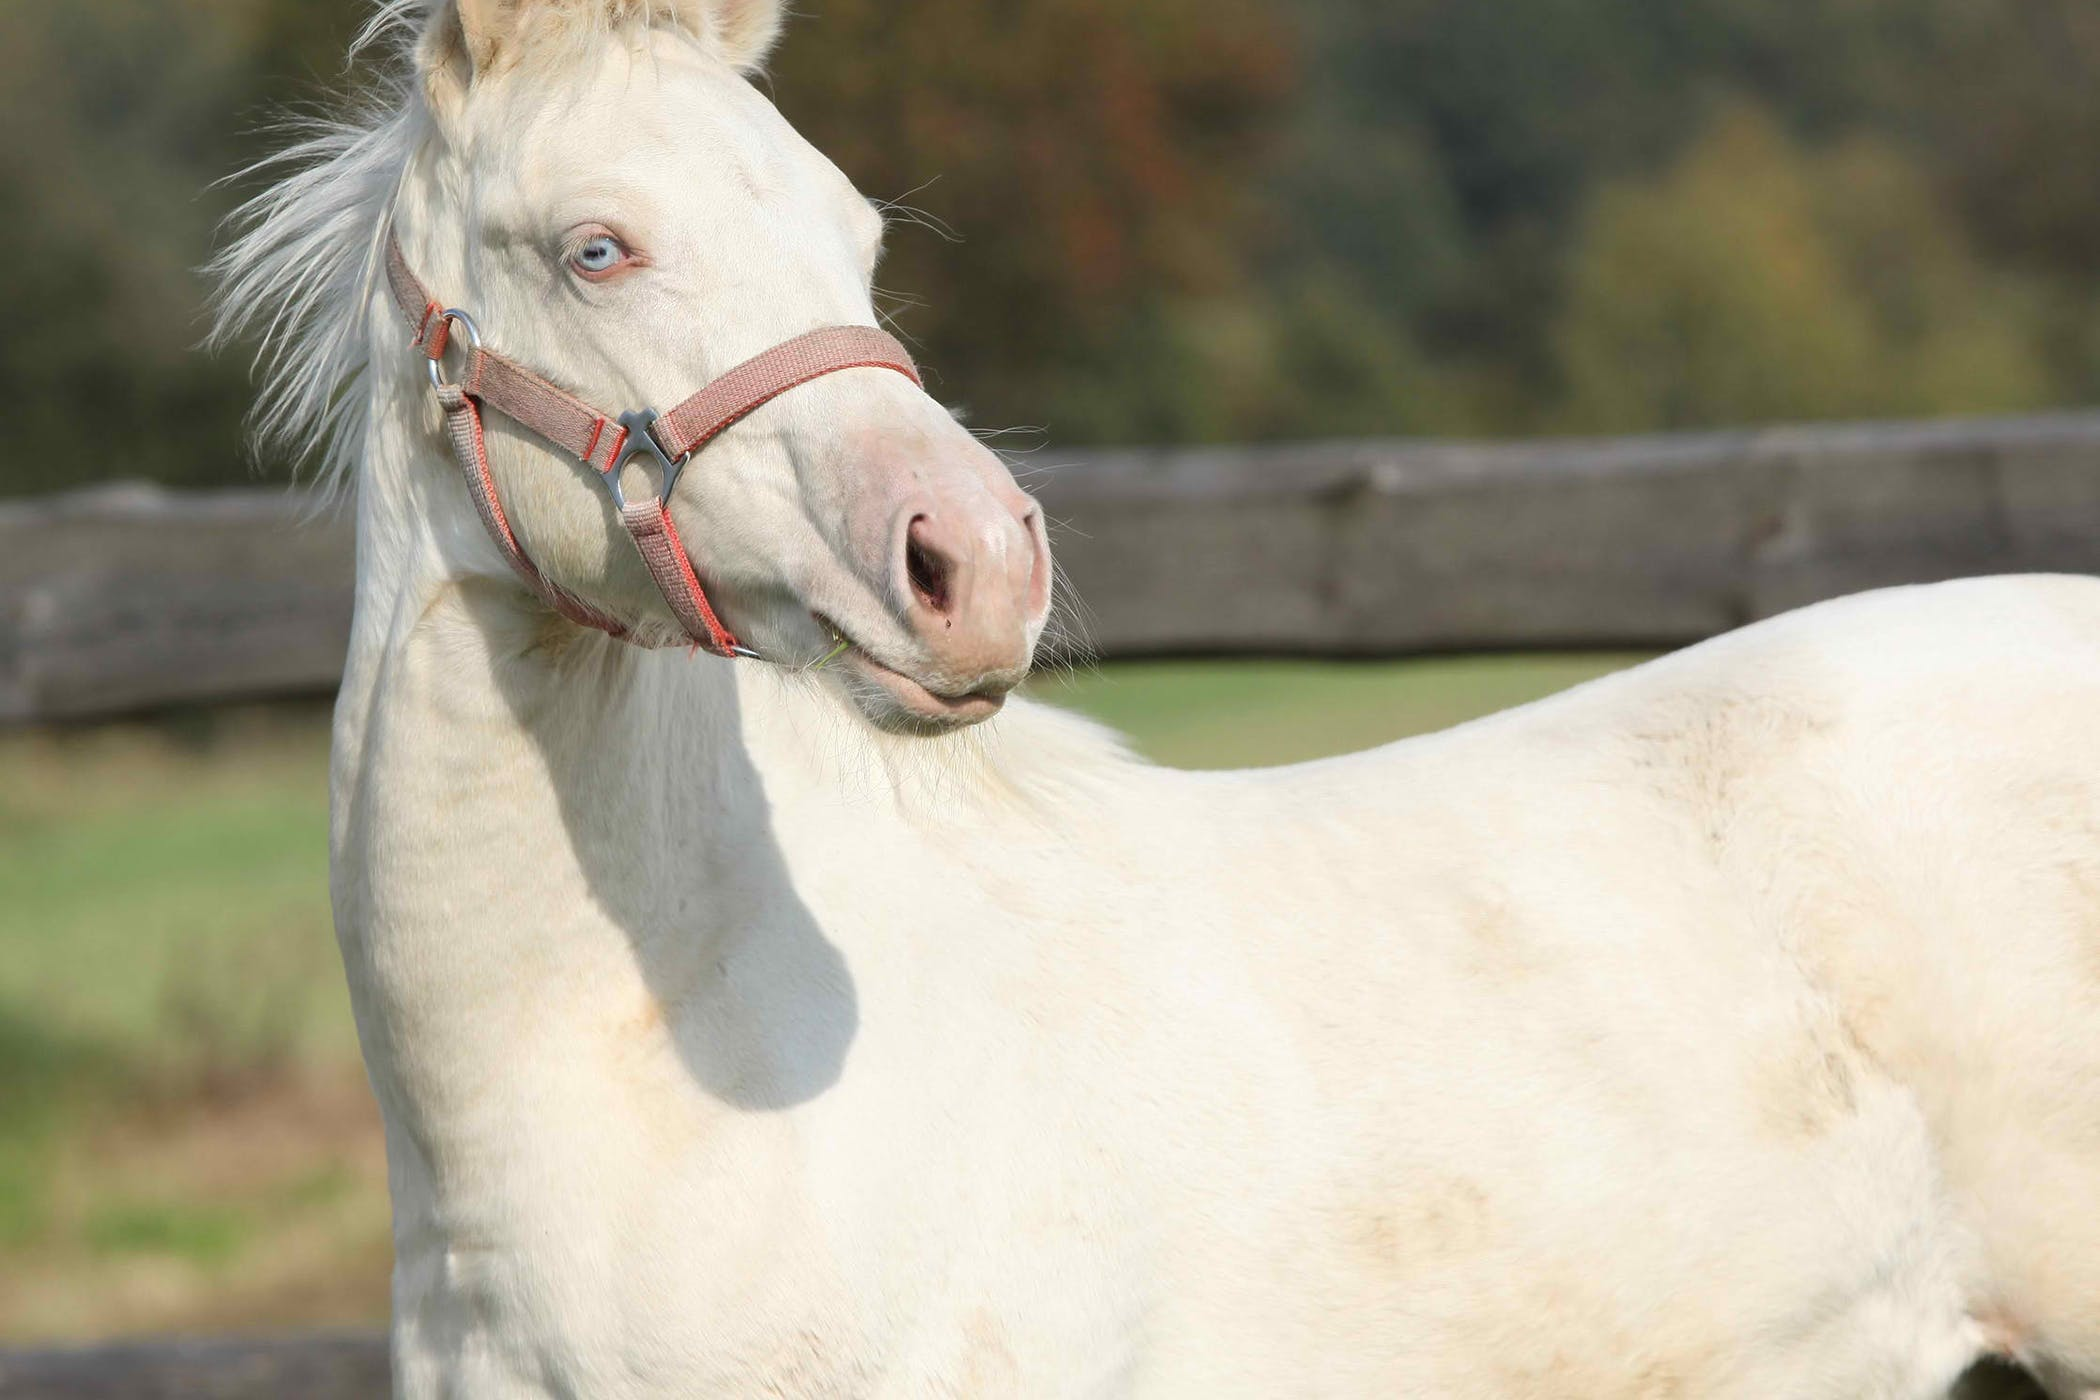 overo lethal white syndrome foals in horses symptoms causes